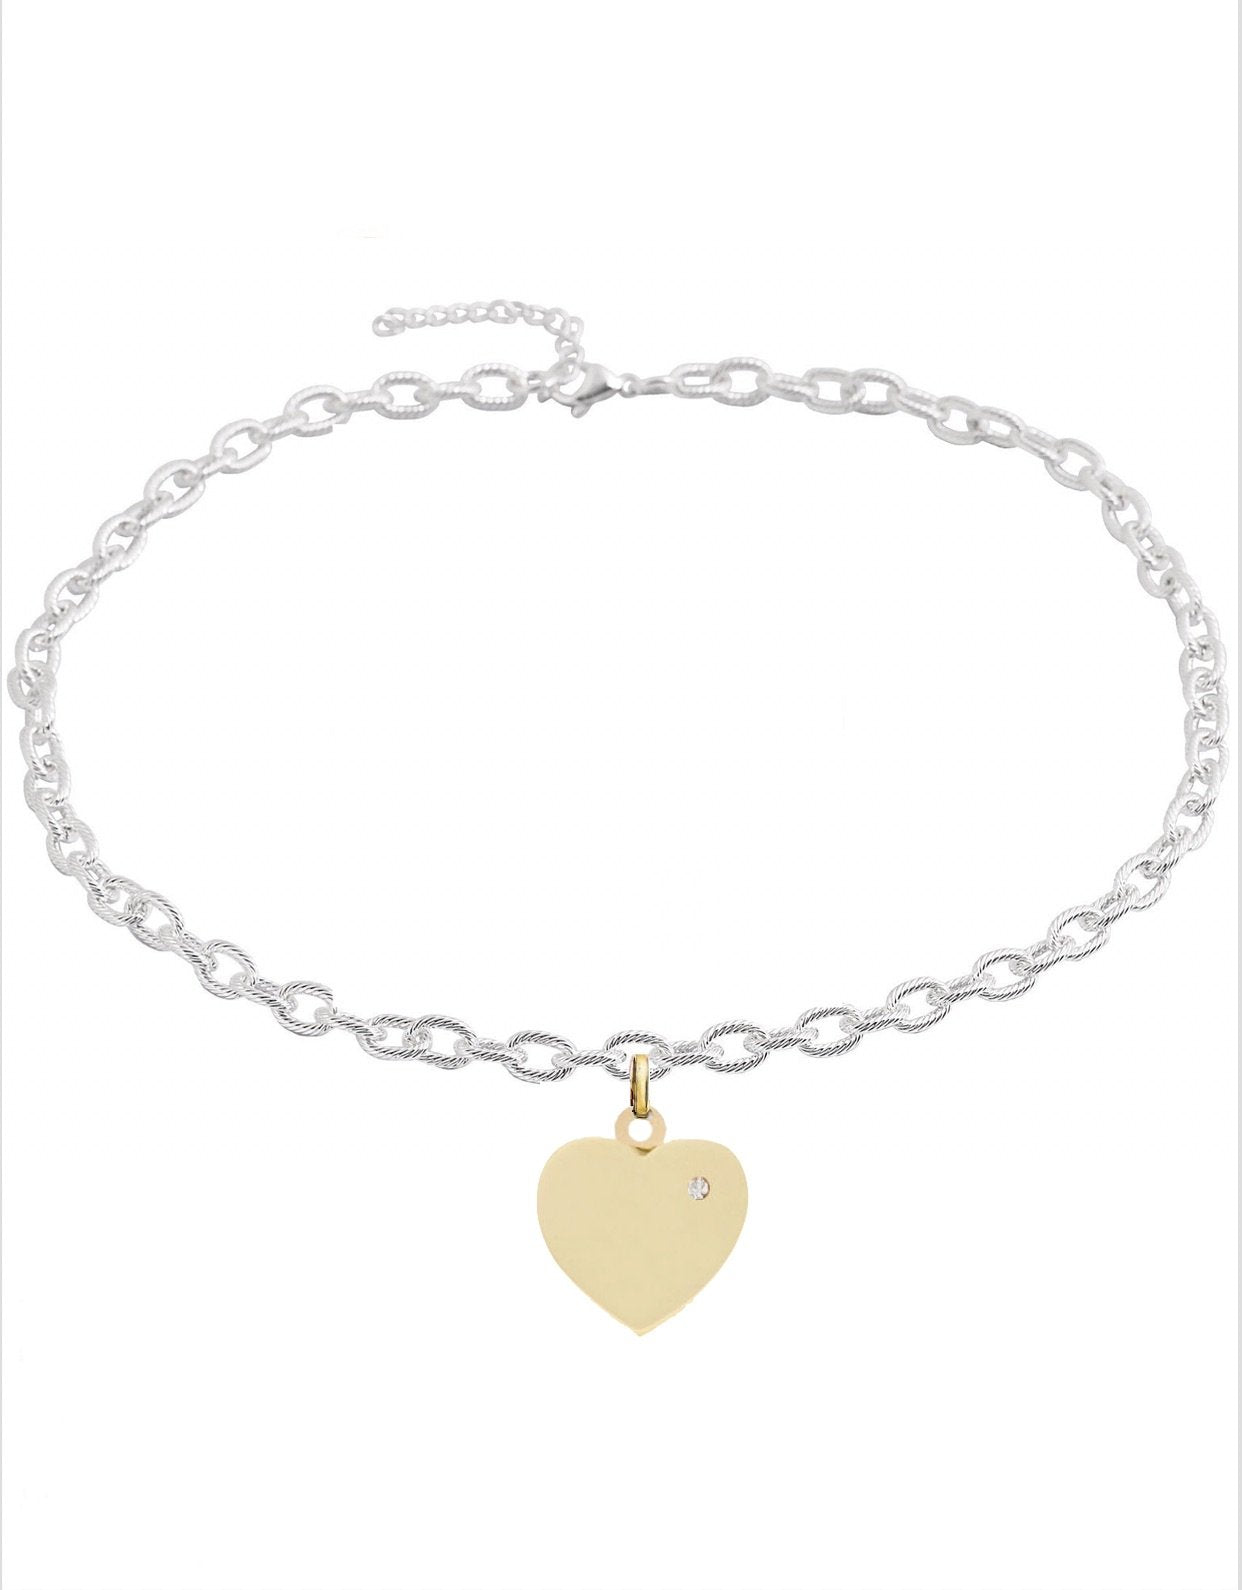 18K Gold & Silver Two Tone Heart Charm Necklace